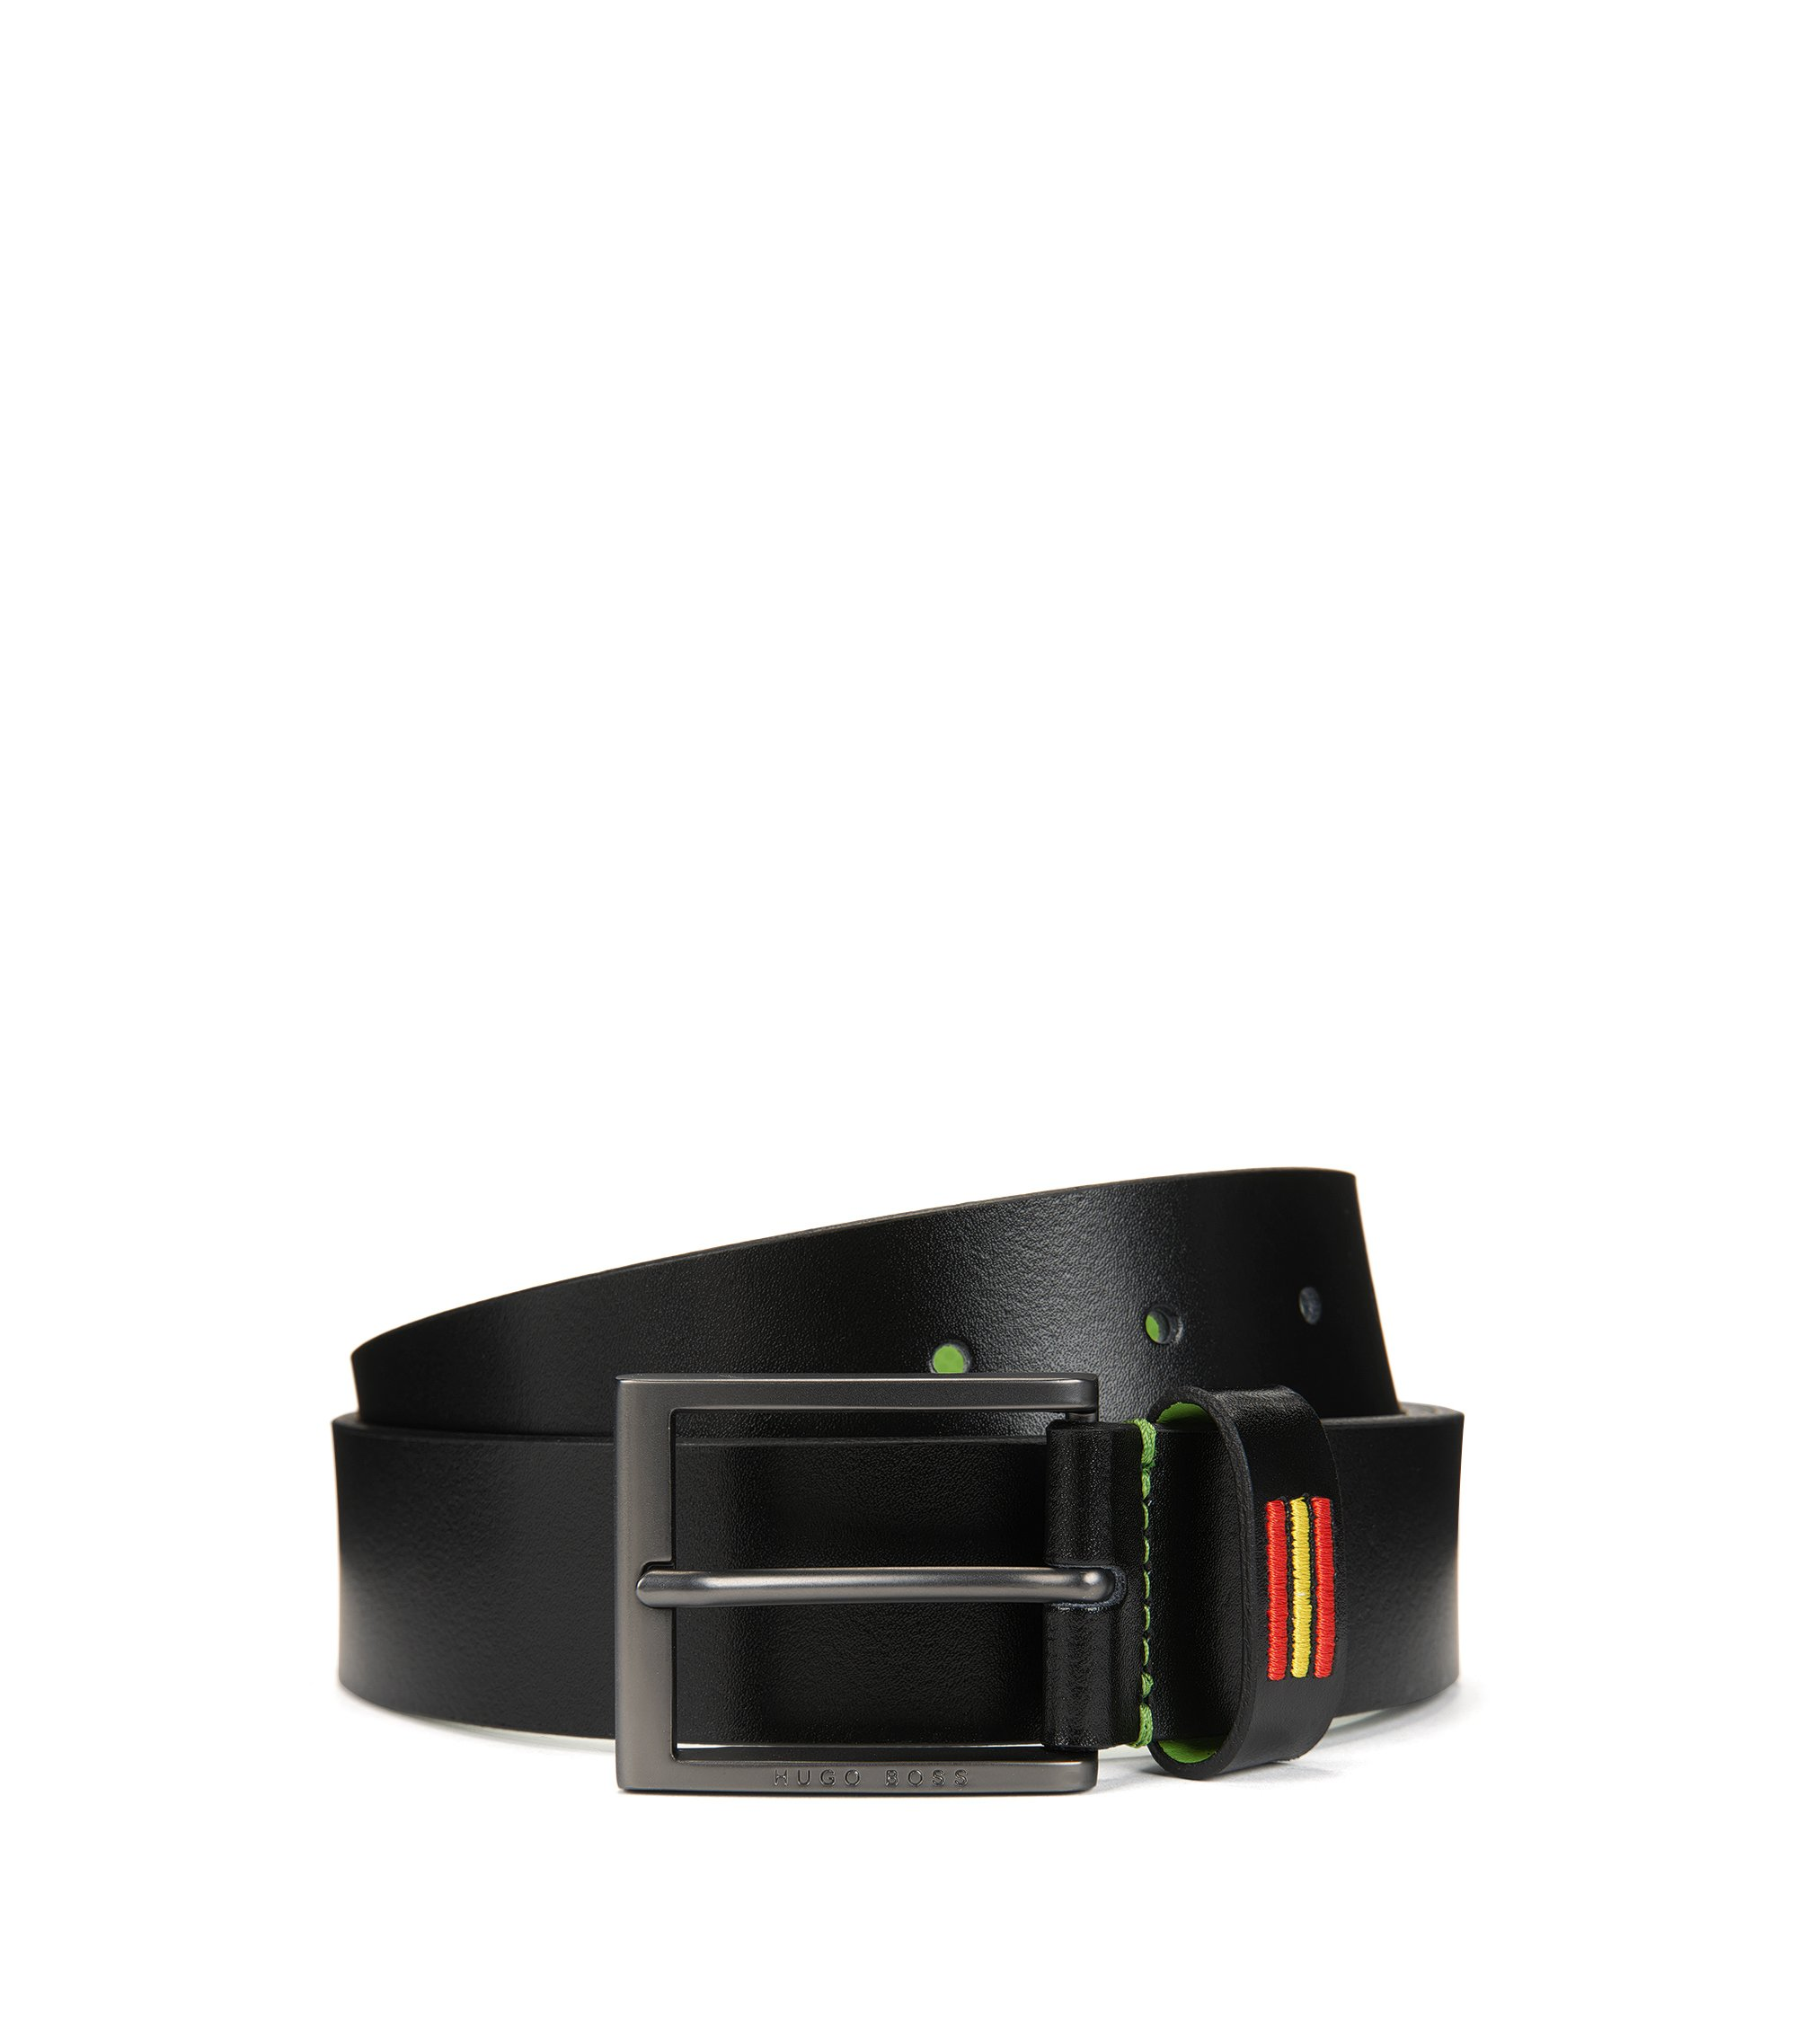 Smooth leather belt with national flag stitching, Black